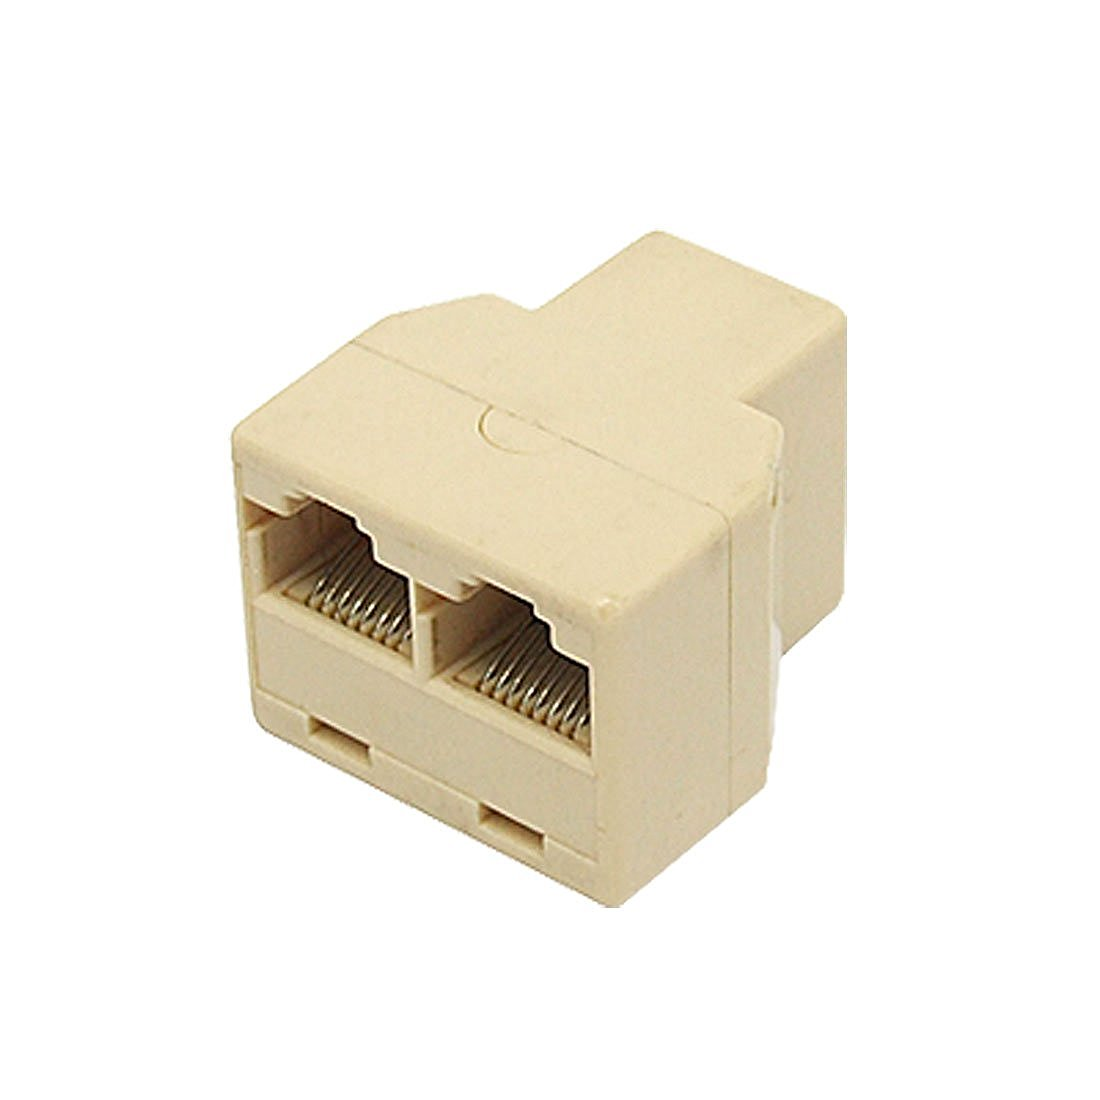 Cheap Rj45 Plug Connections Find Deals On Ethernet Wiring Get Quotations 3 Way Network Cable Splitter Extender Coupler